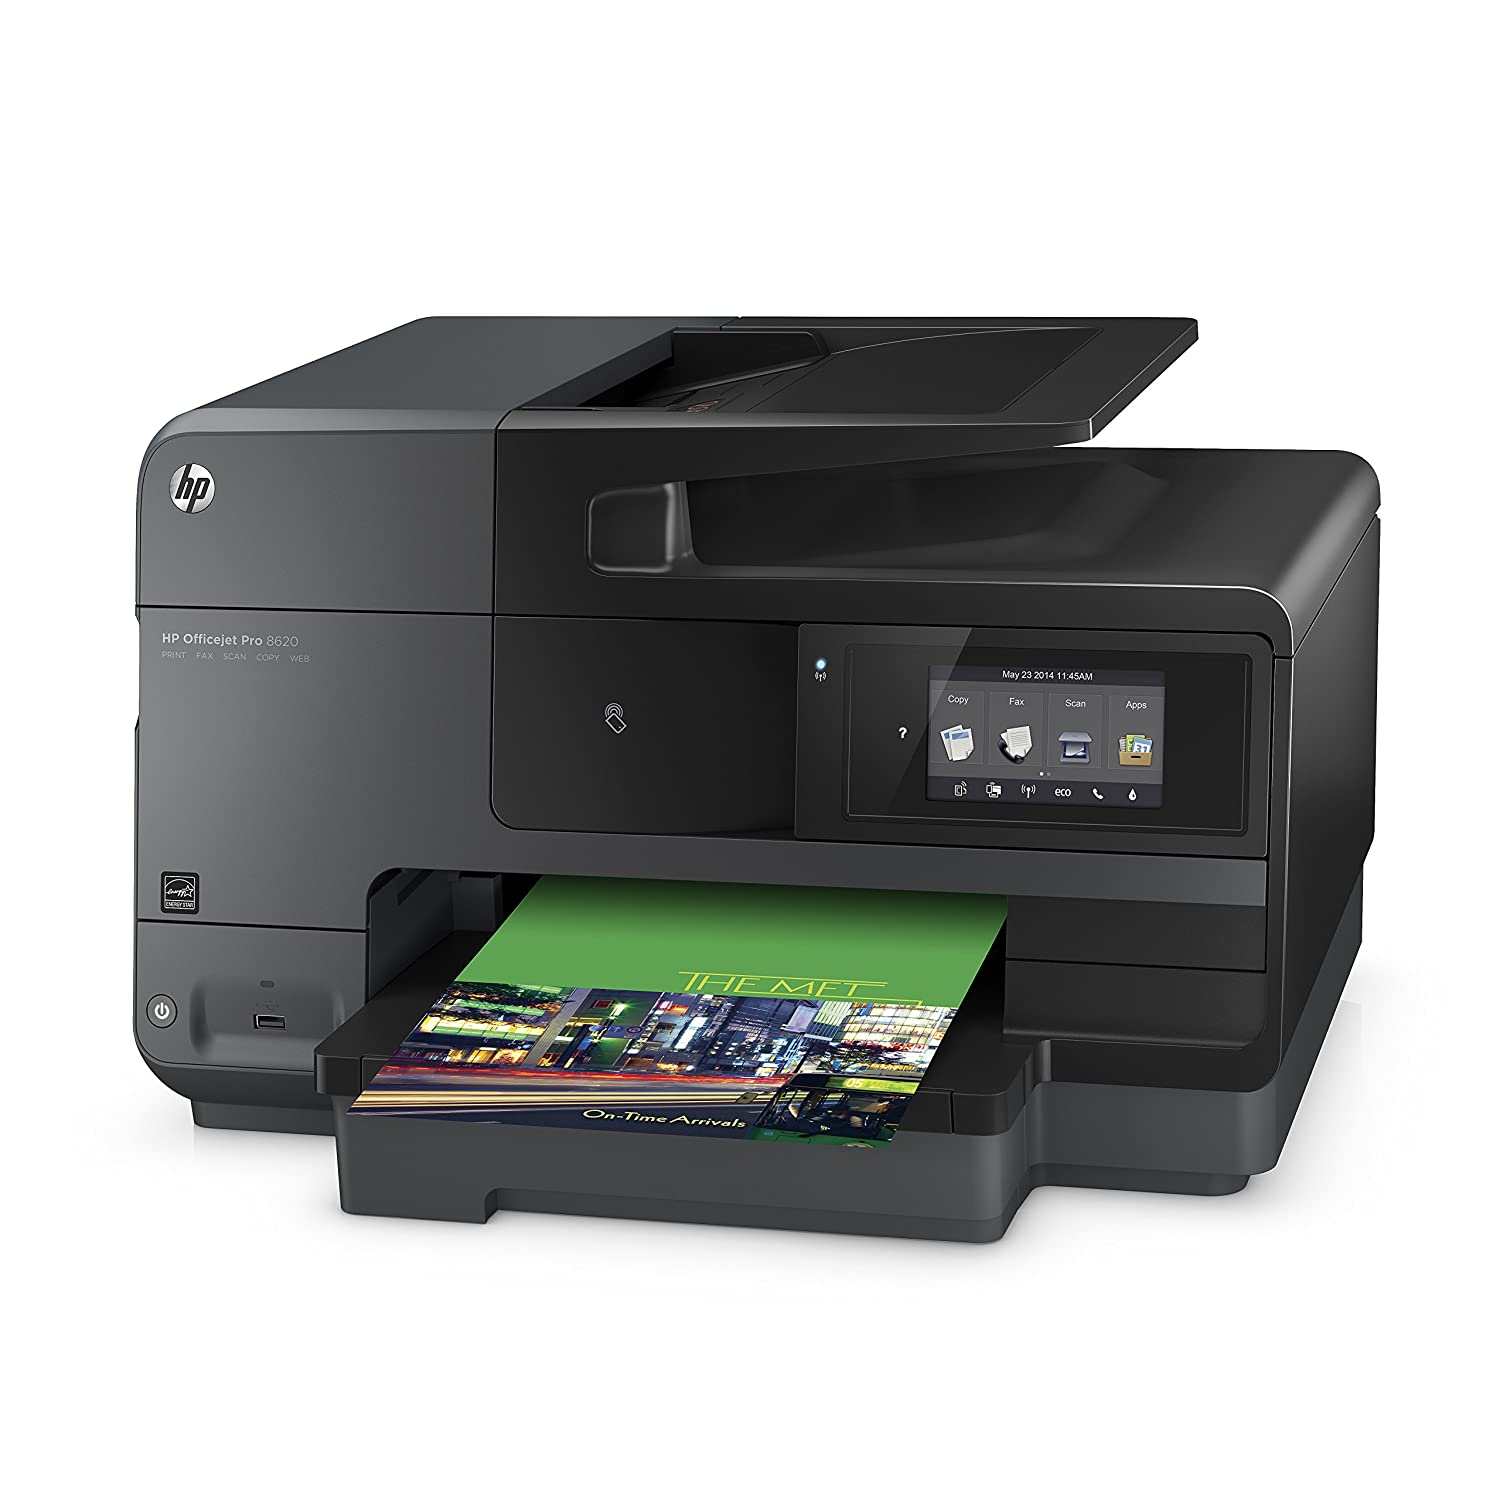 hp com jet from officejet printhead printer product office dhgate accessory for pro original